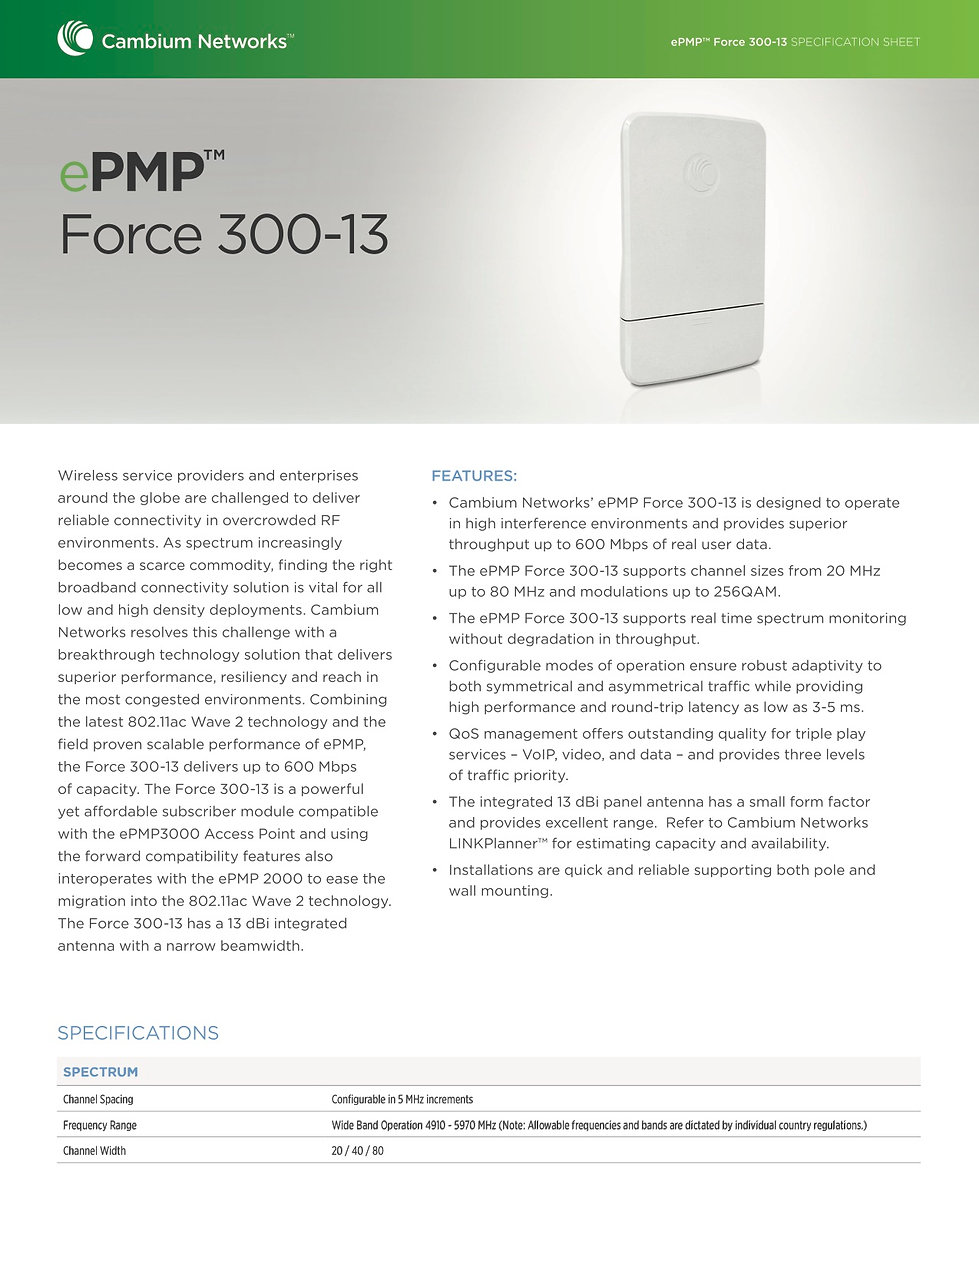 CambiumePMP Force 300-13 Specification